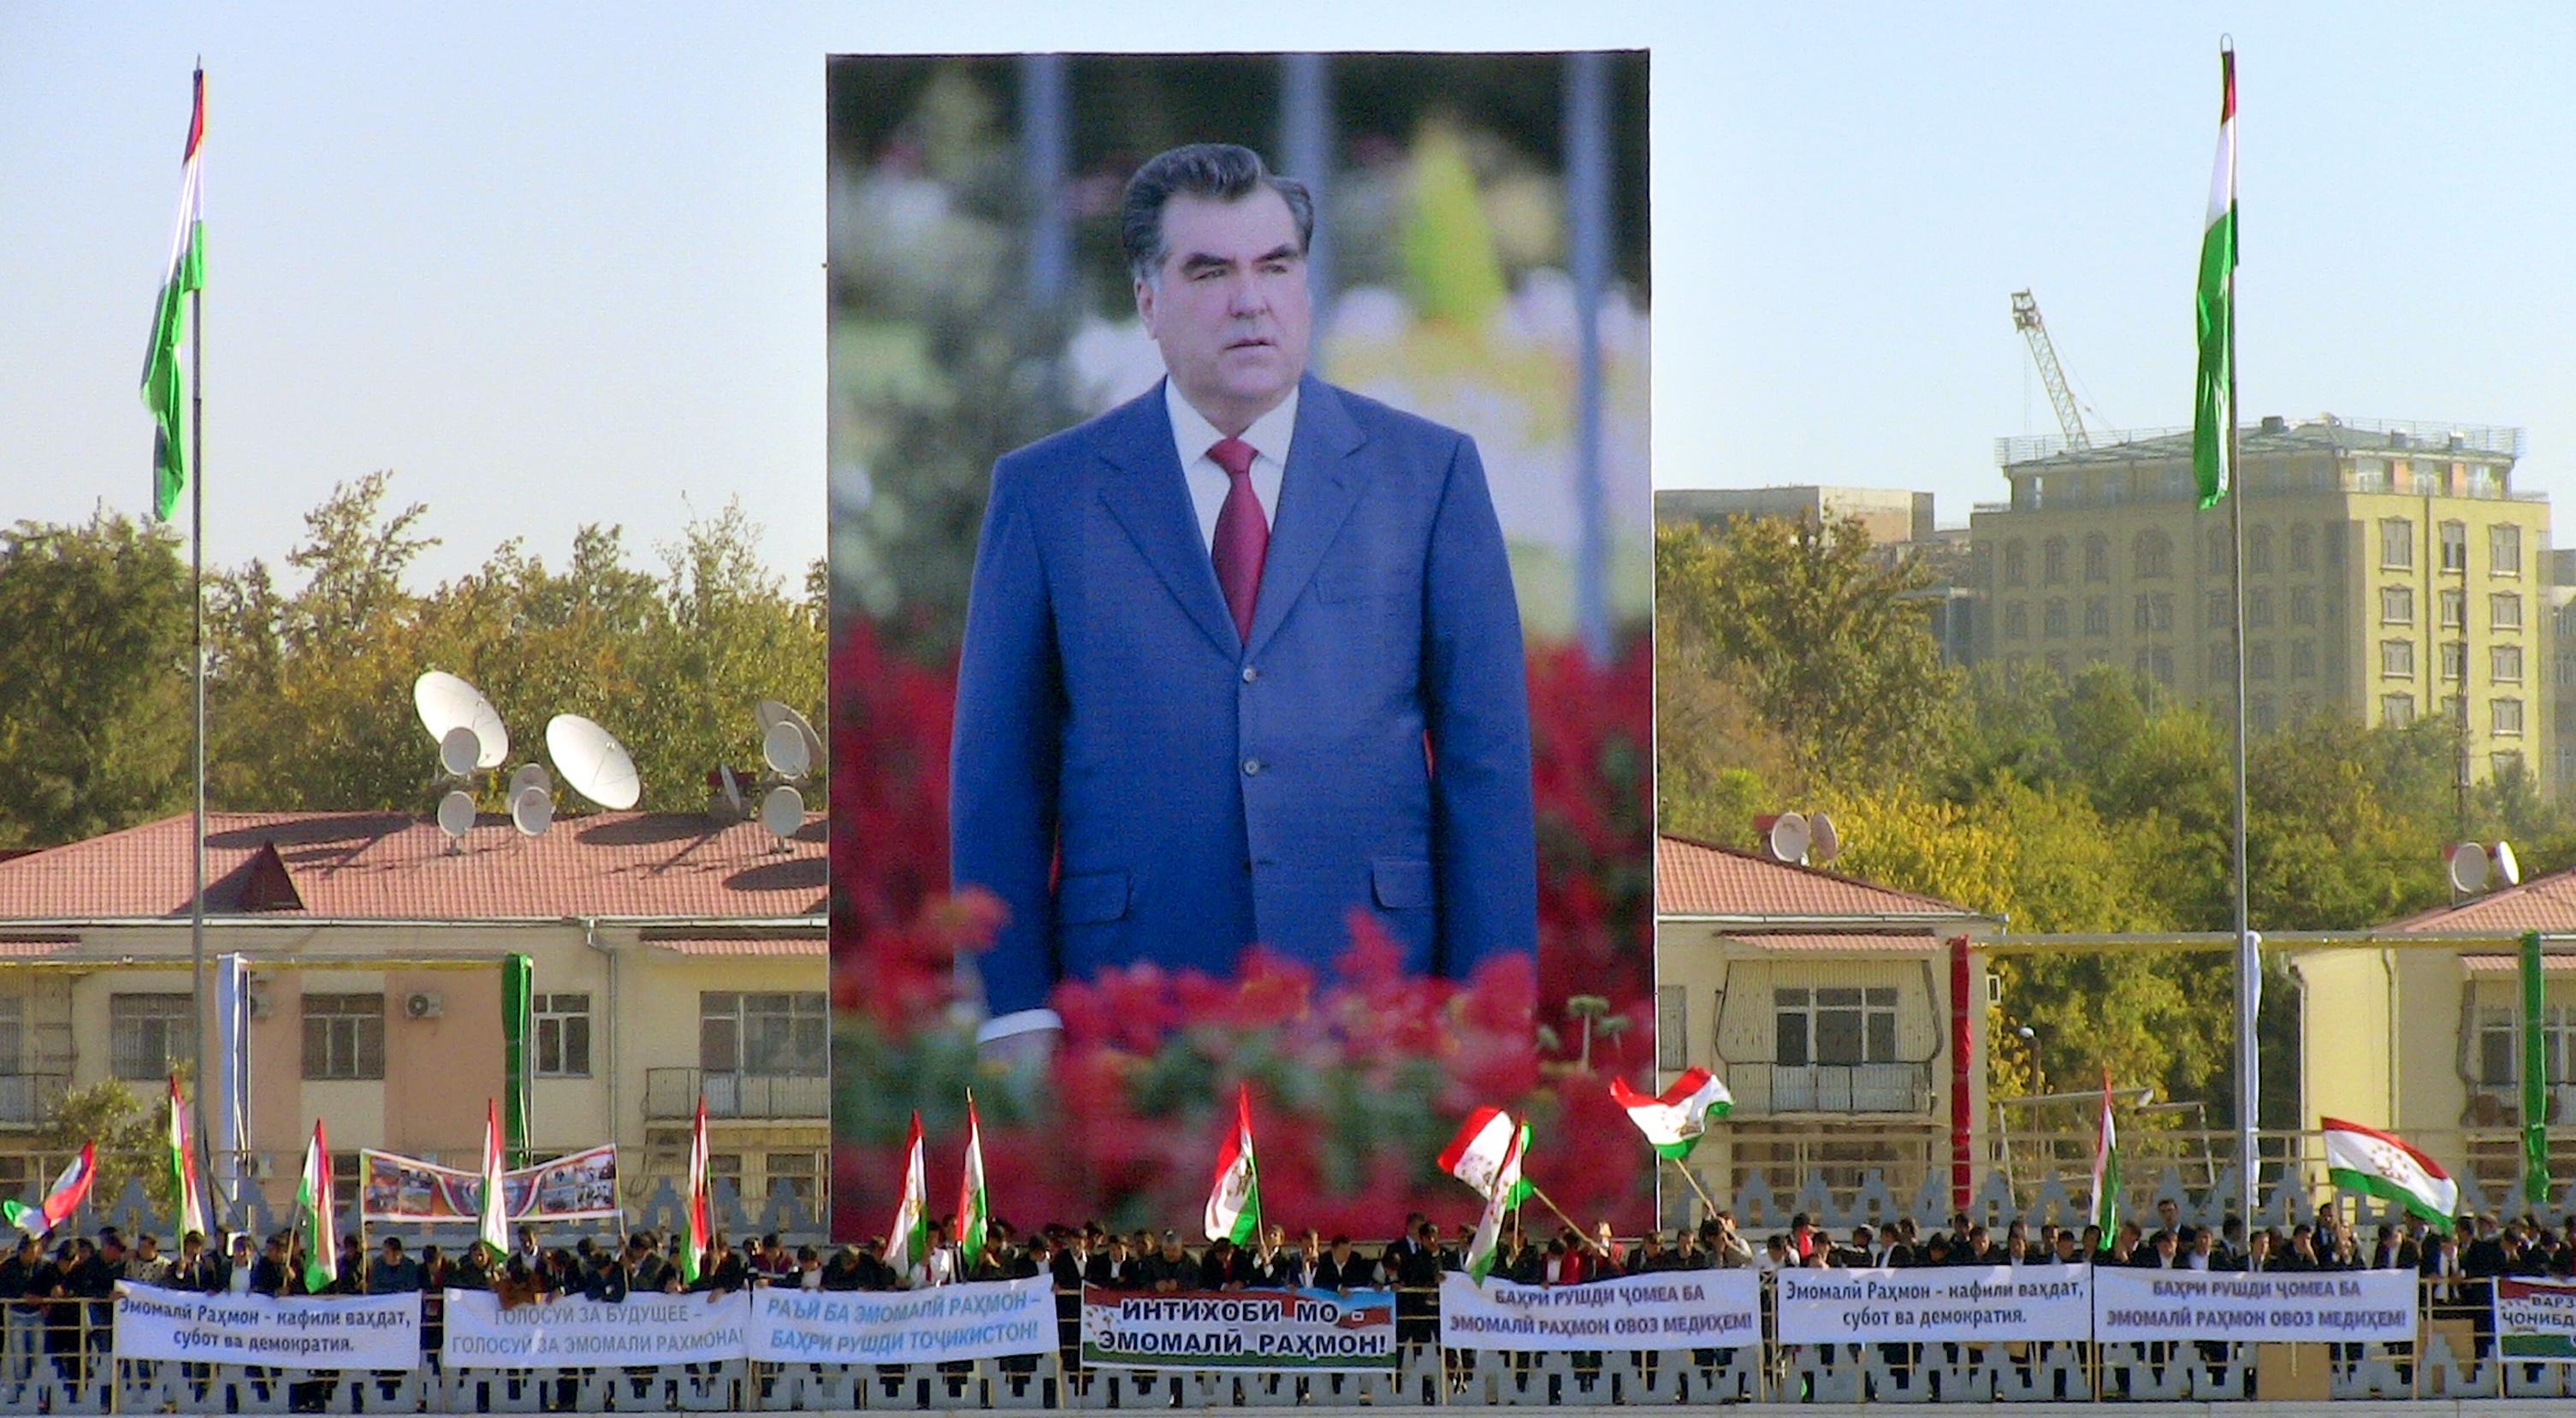 People wave Tajik flags in front of a giant poster of Tajikistan's President Emomali Rakhmon during a rally in Dushanbe, on November 3, 2013 (AFP Photo/)